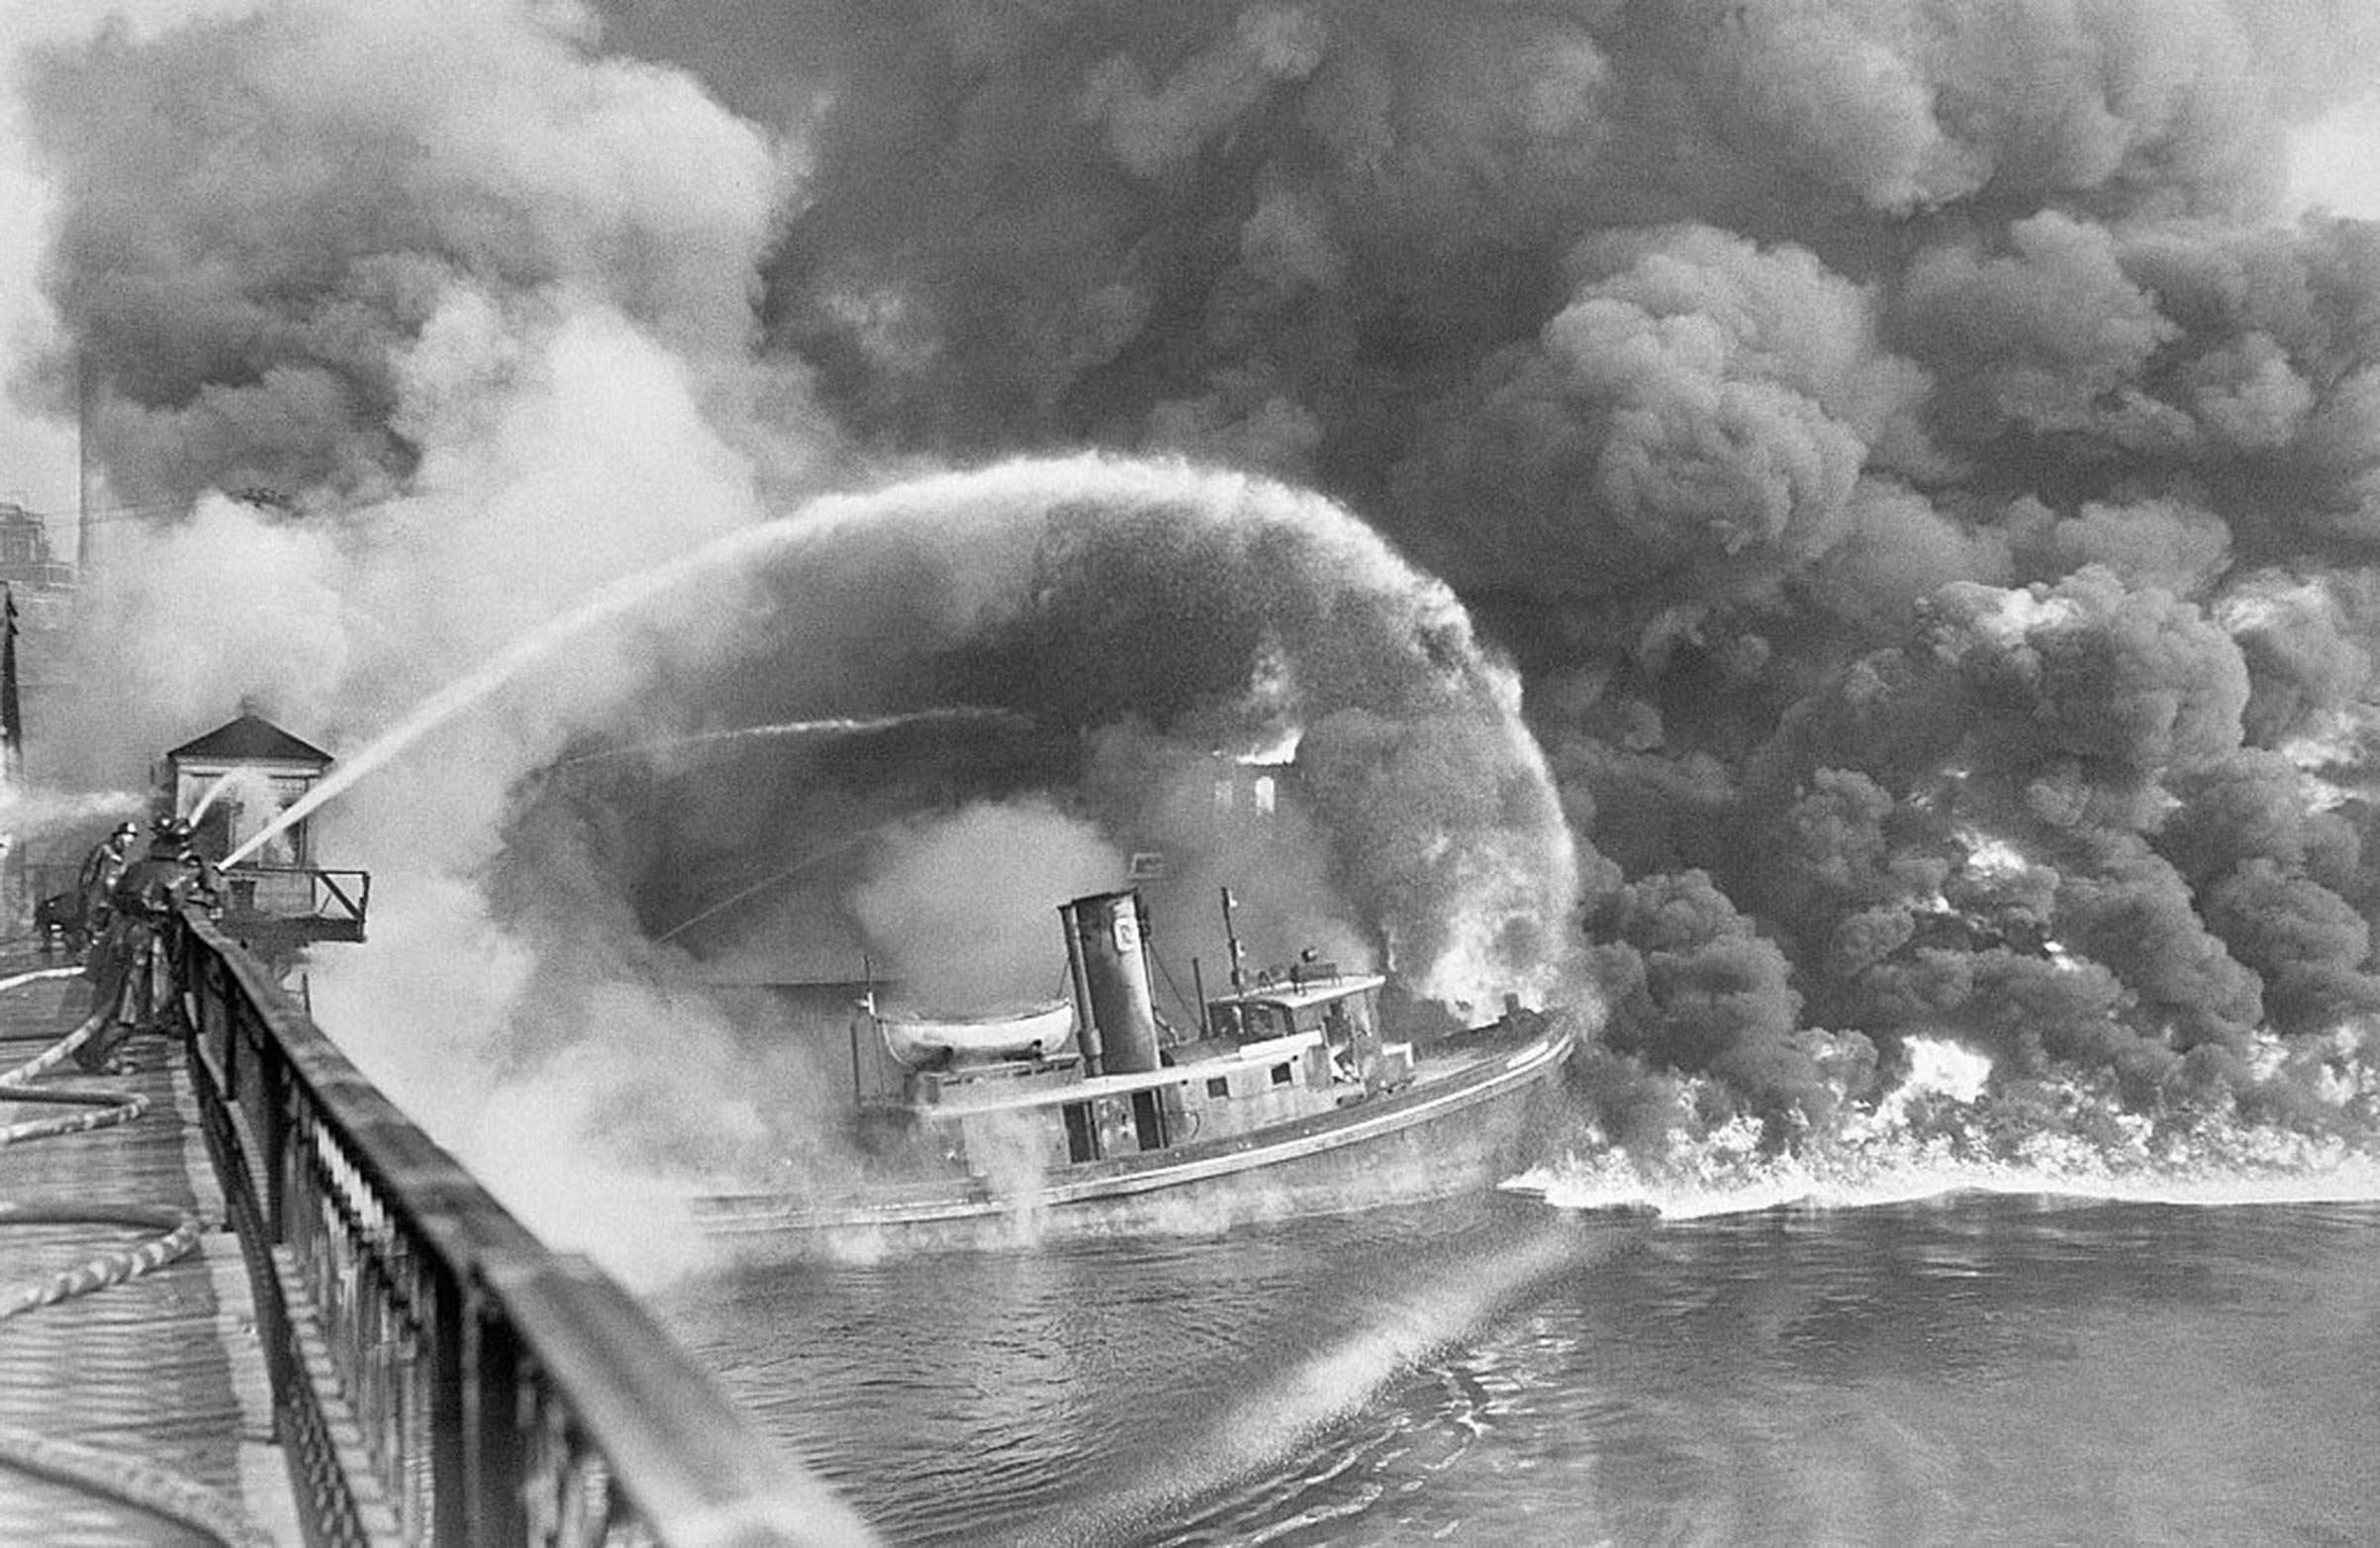 Firemen trying to put out a 1952 blaze on the Cuyahoga River.